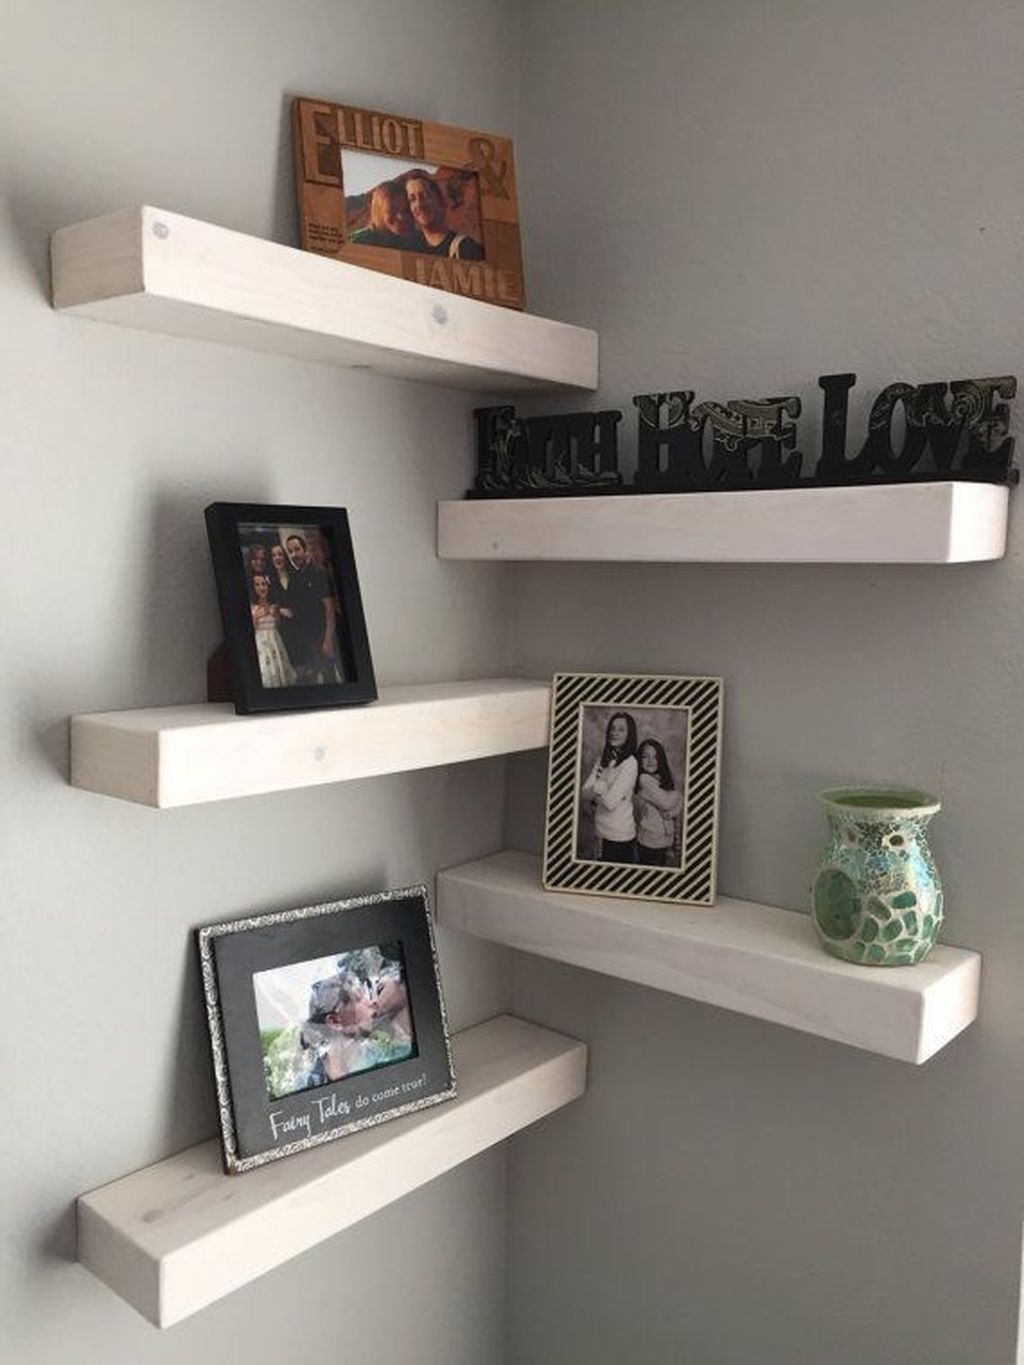 37 Captivating Diy Floating Shelves Living Room Decorating Ideas Wall Shelves Living Room Floating Shelves Living